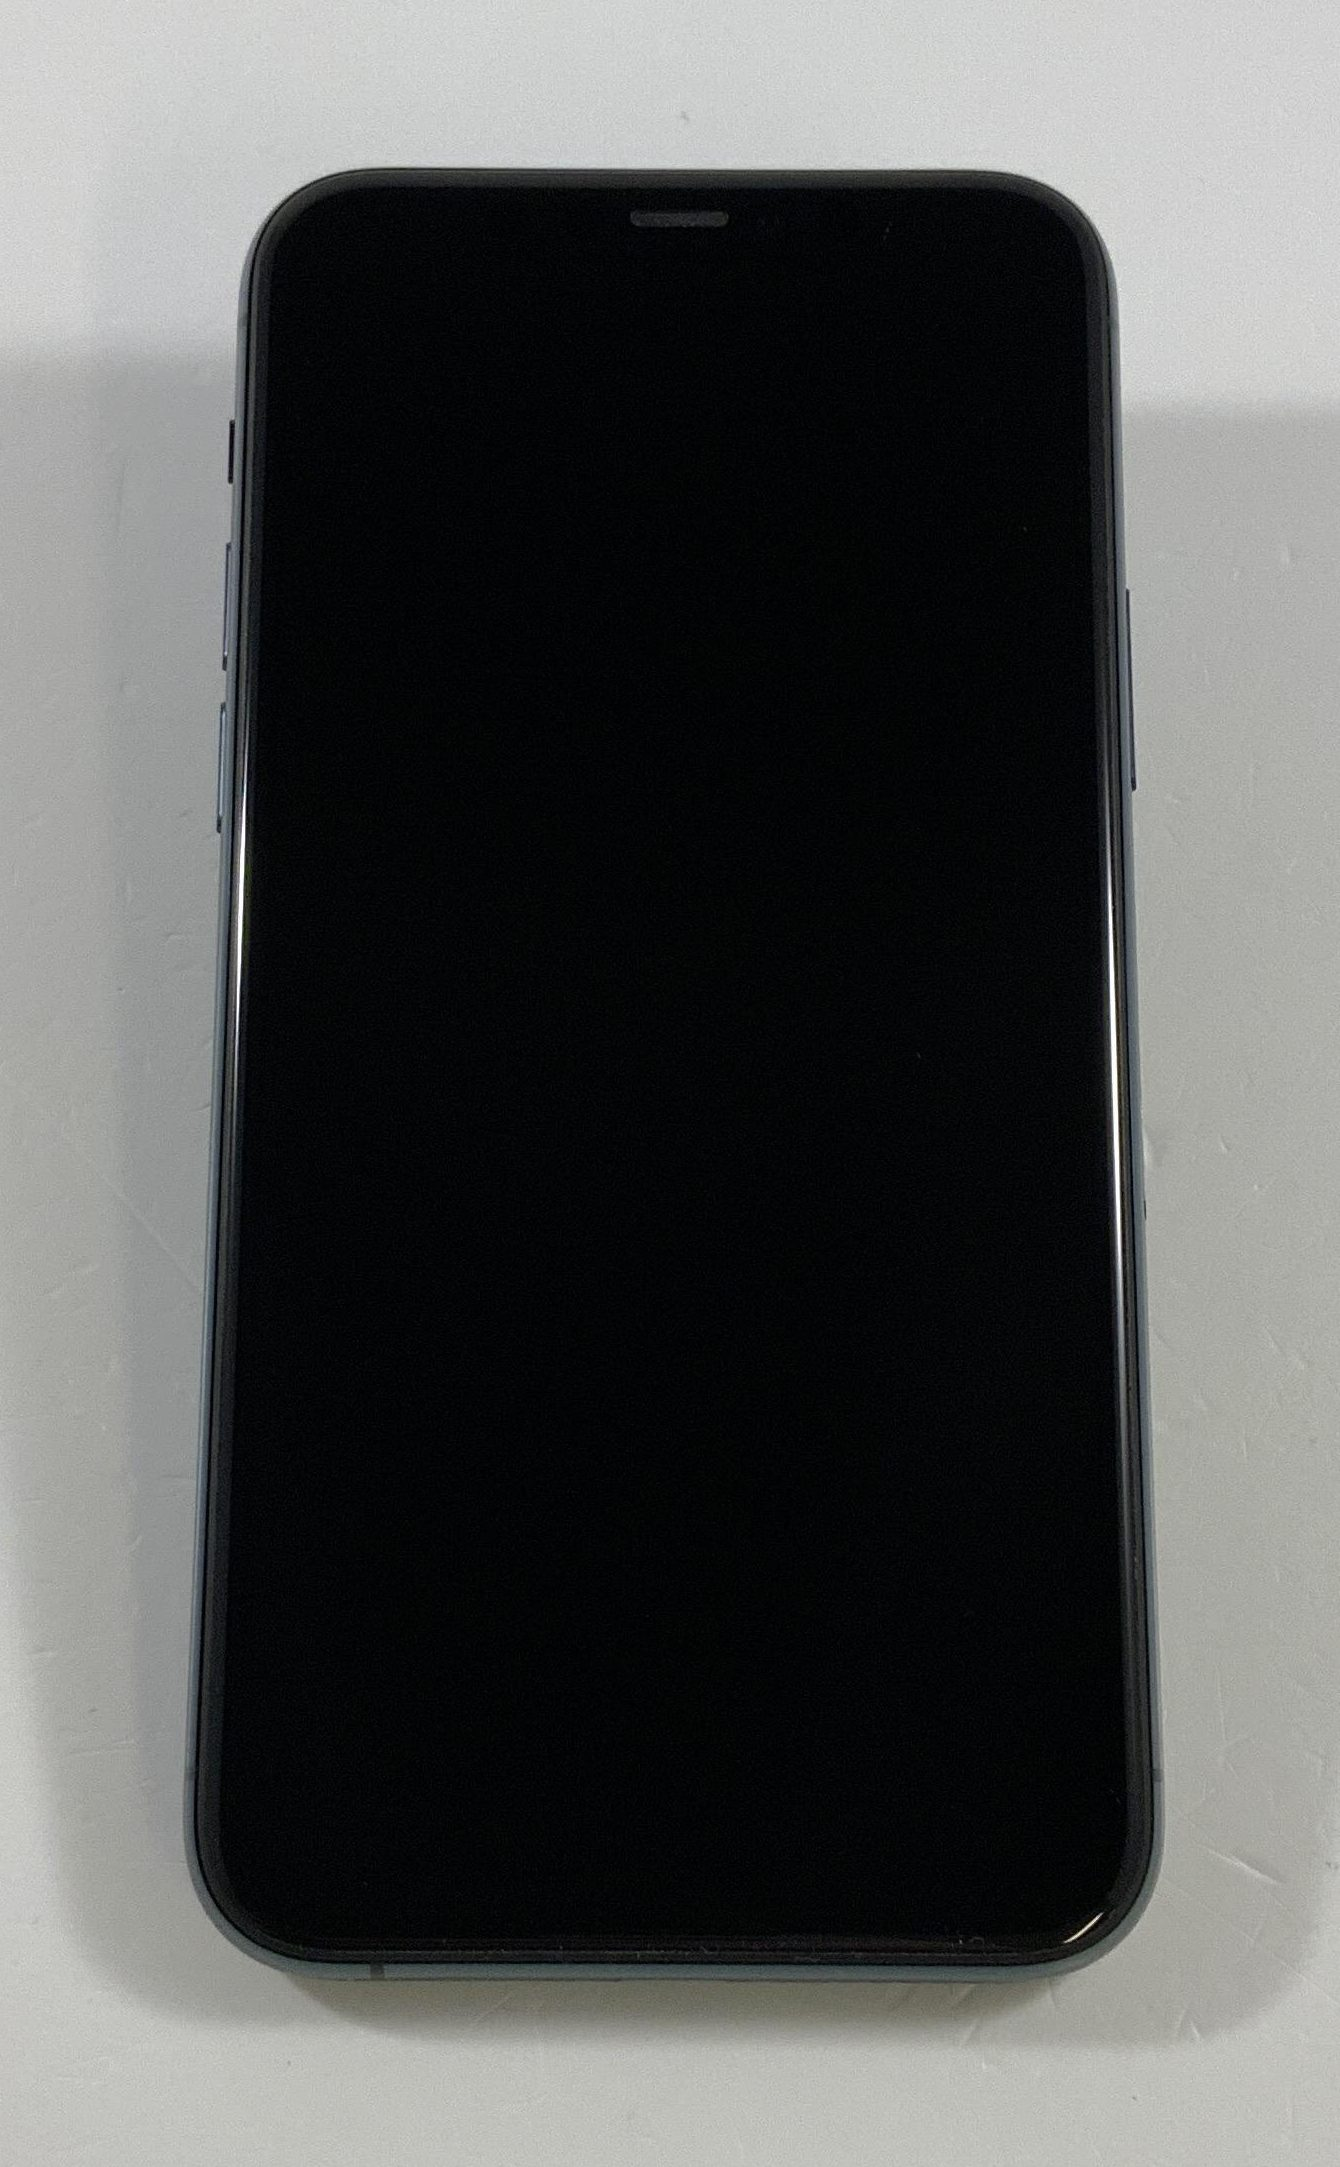 iPhone 11 Pro 256GB, 256GB, Midnight Green, immagine 1